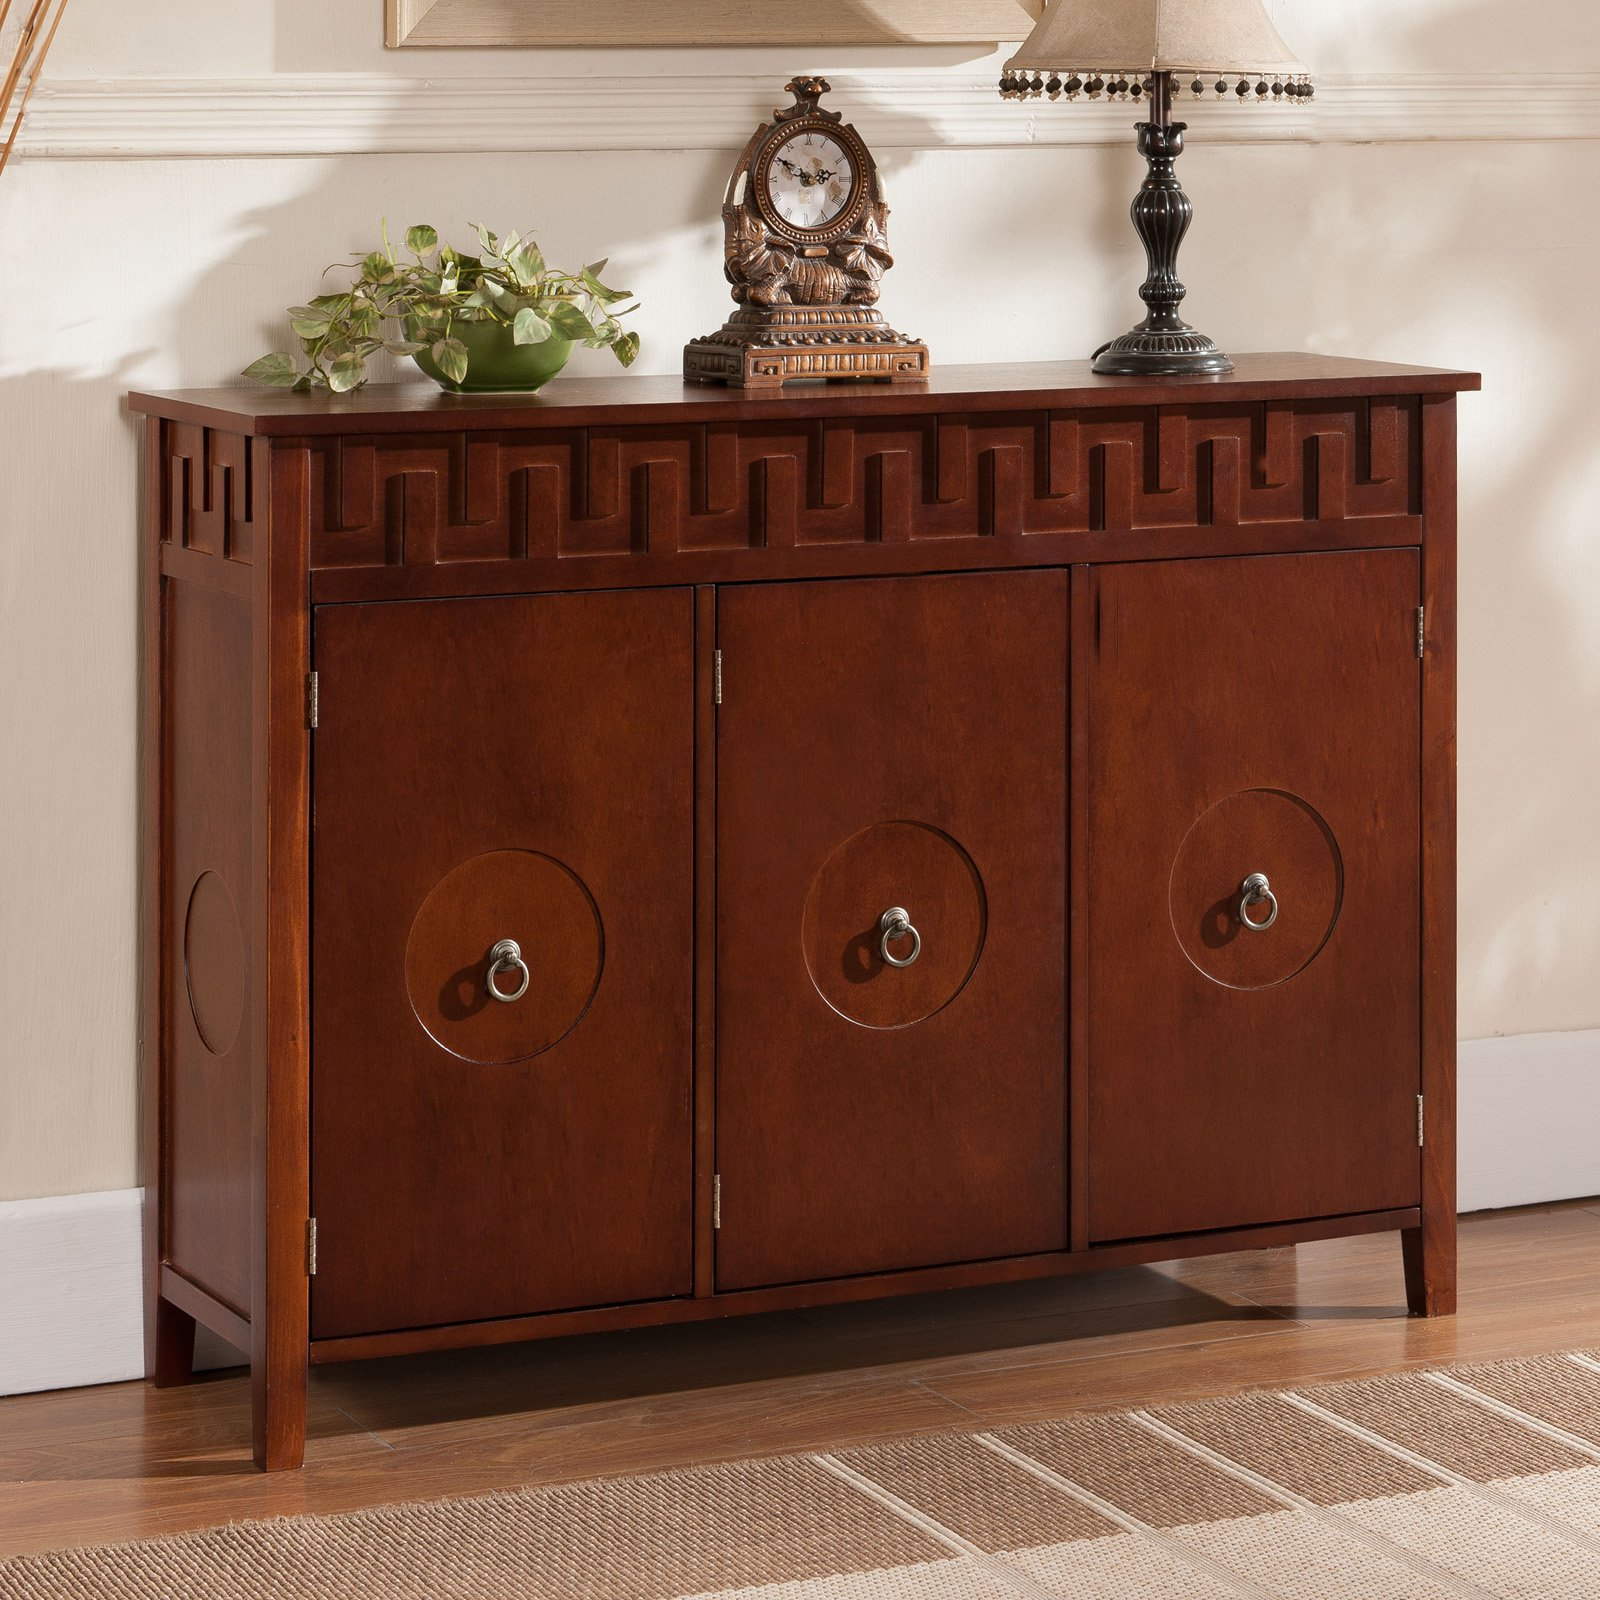 K & B Furniture R1320 Console Table